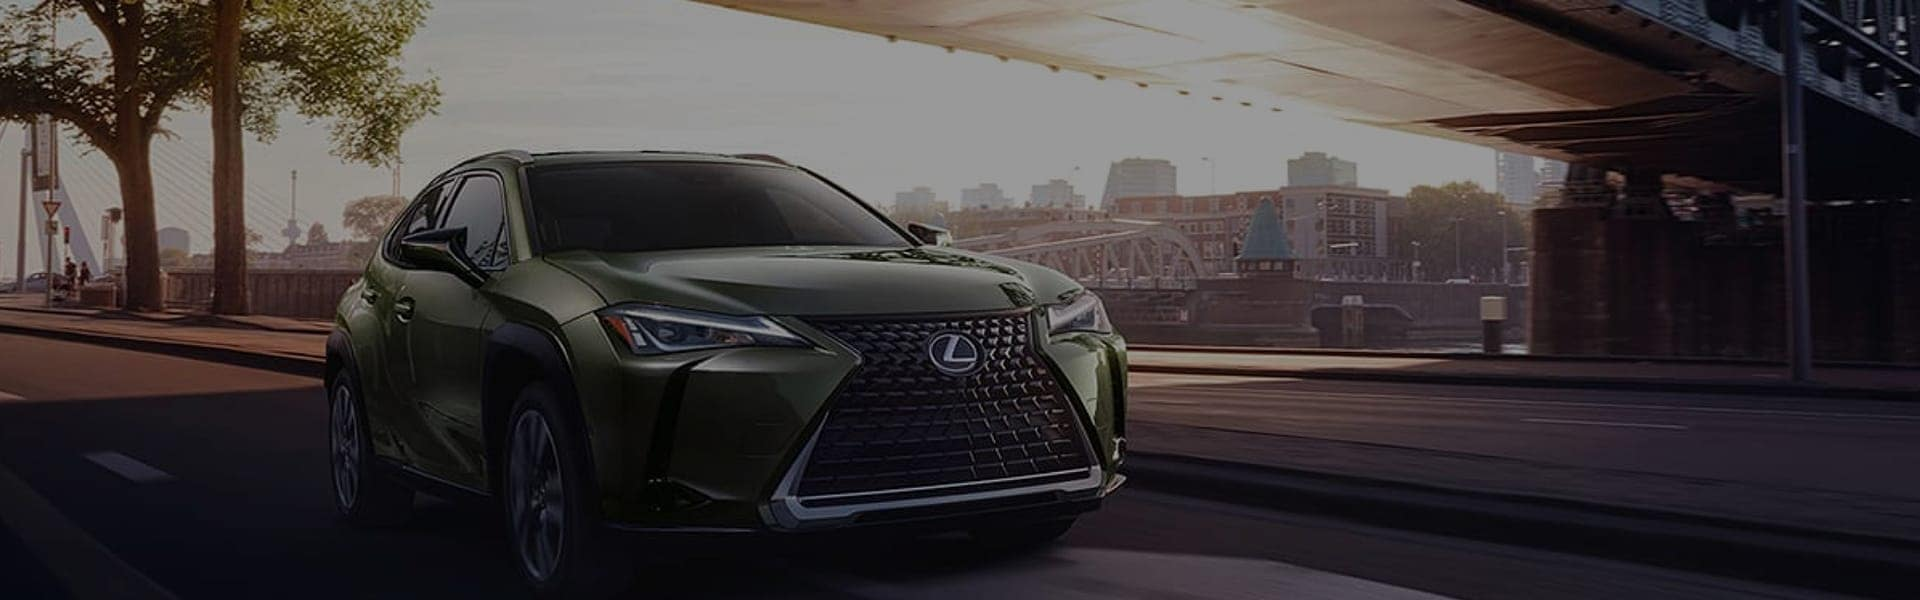 Jim Hudson Lexus Columbia | Lexus Dealer in Columbia, SC